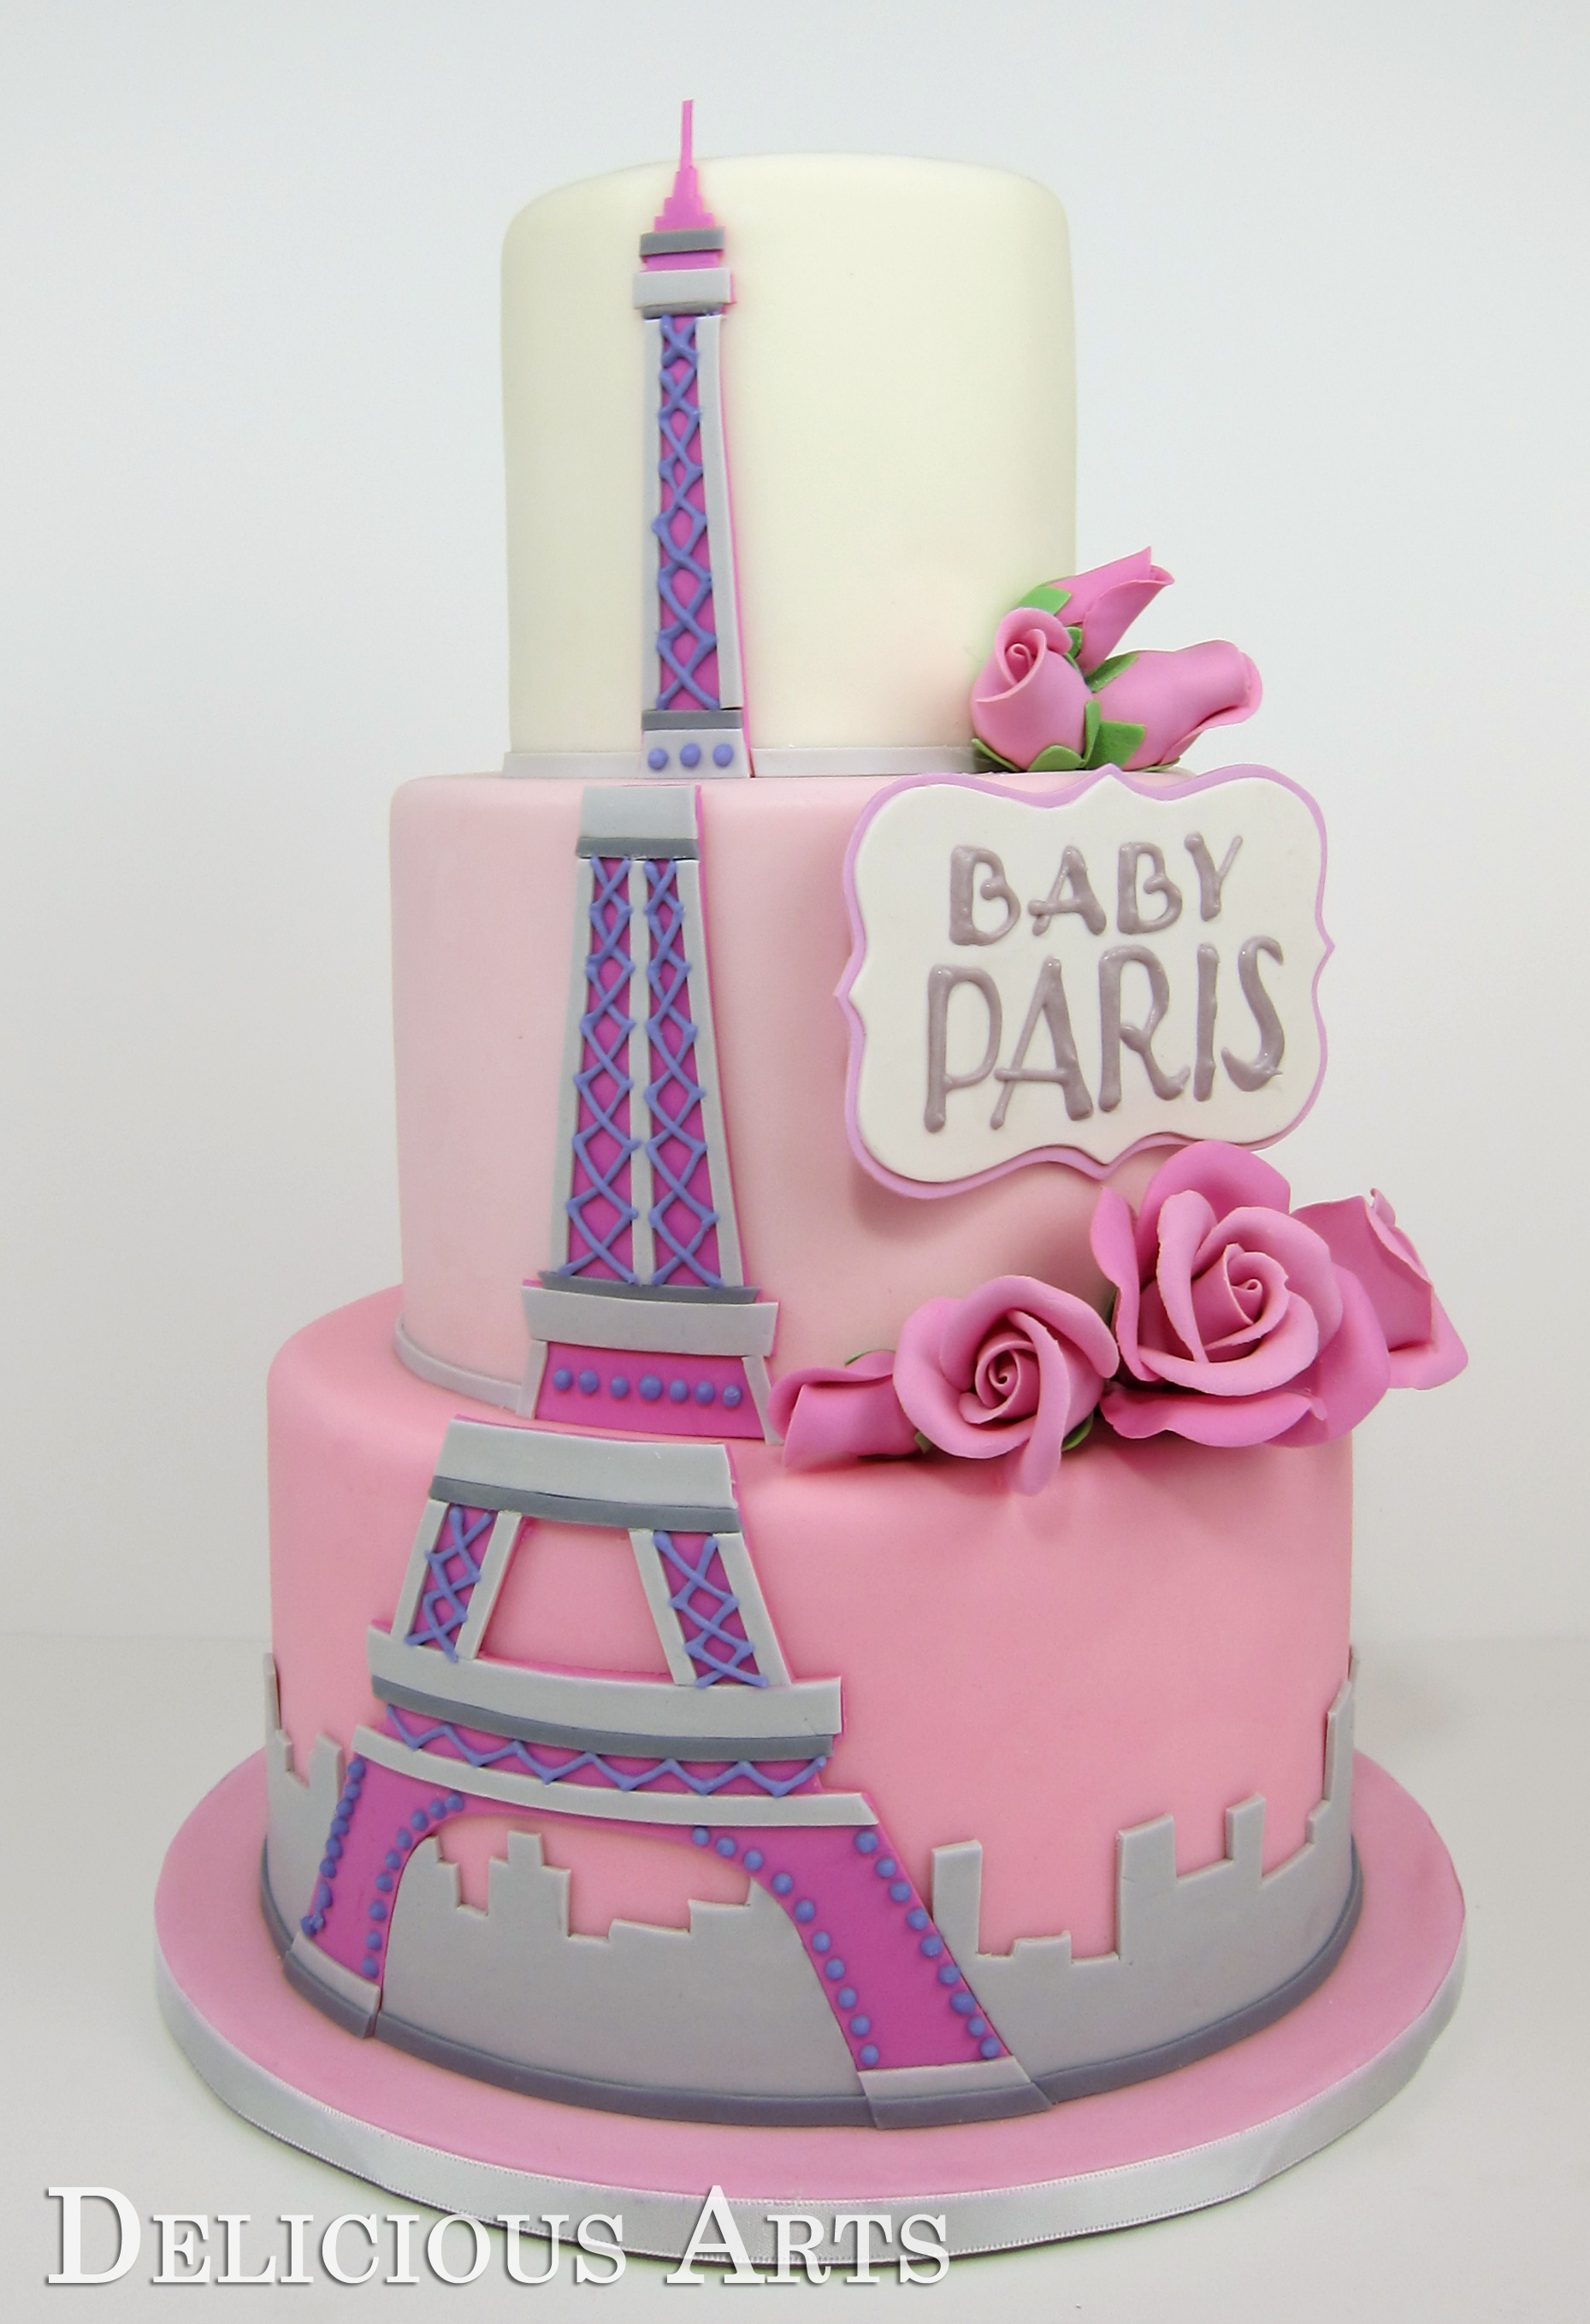 arts custom cake studio bakery paris themed baby shower cake